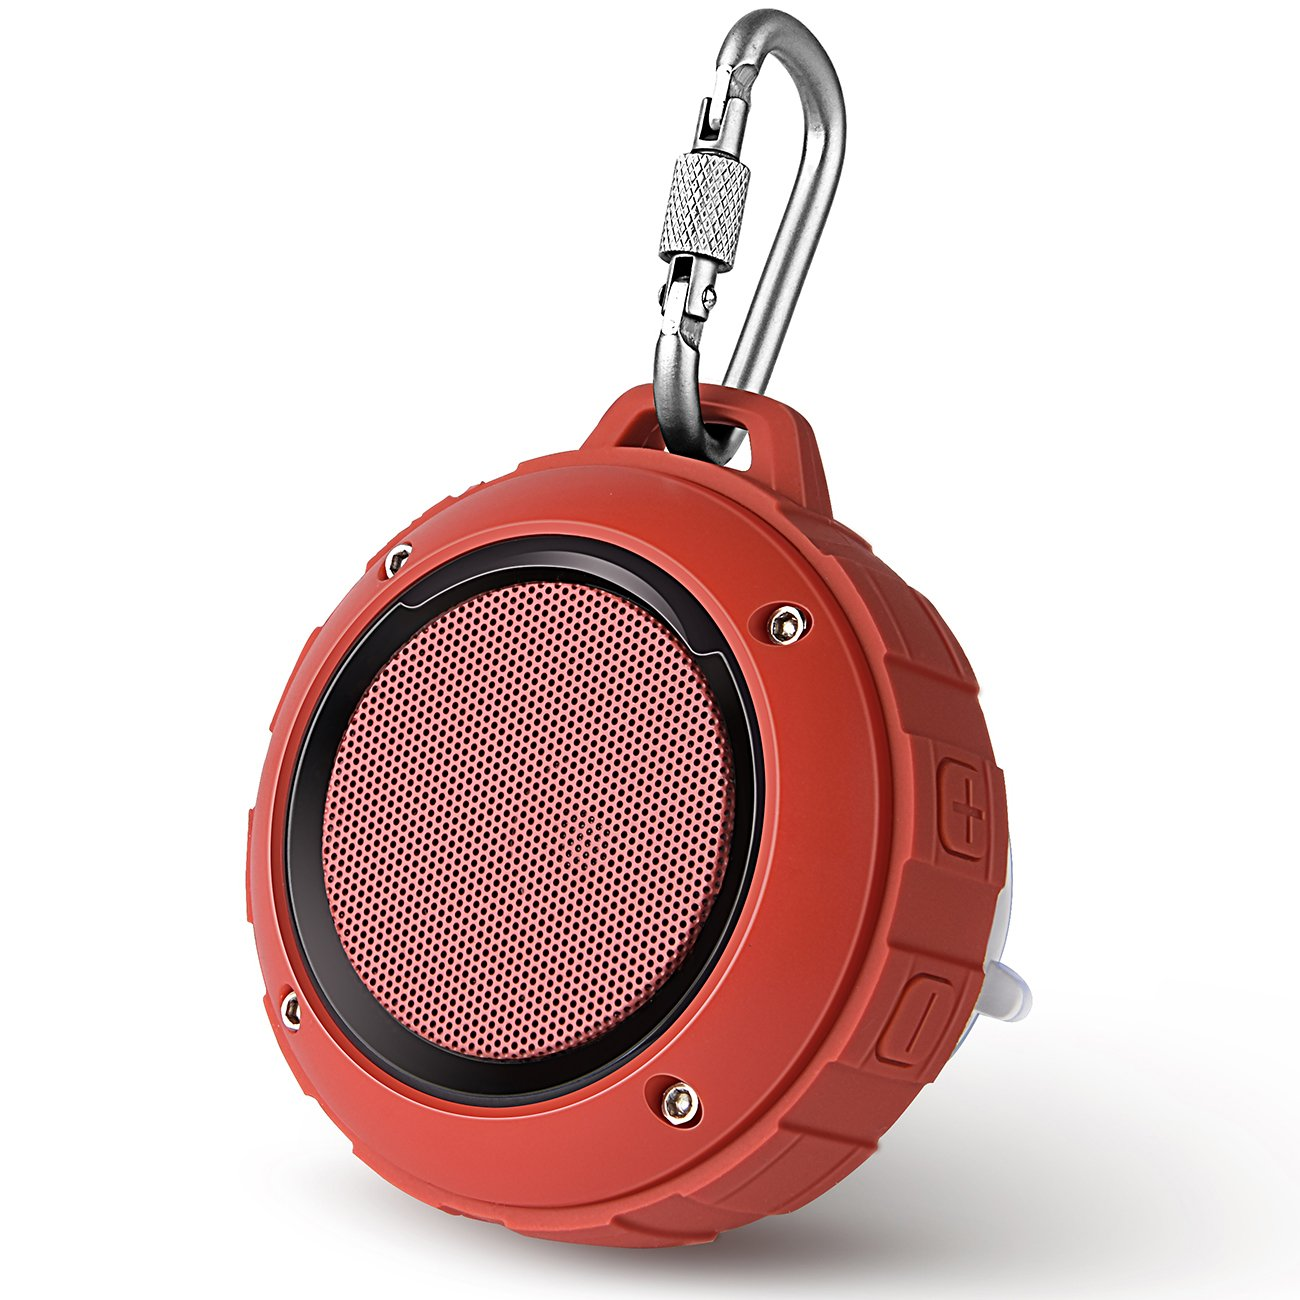 Outdoor Waterproof Bluetooth Speaker,Kunodi Wireless Portable Mini Shower Travel Speaker with Subwoofer, Enhanced Bass, Built in Mic for Sports, Pool, Beach, Hiking, Camping (Red) 4326553680